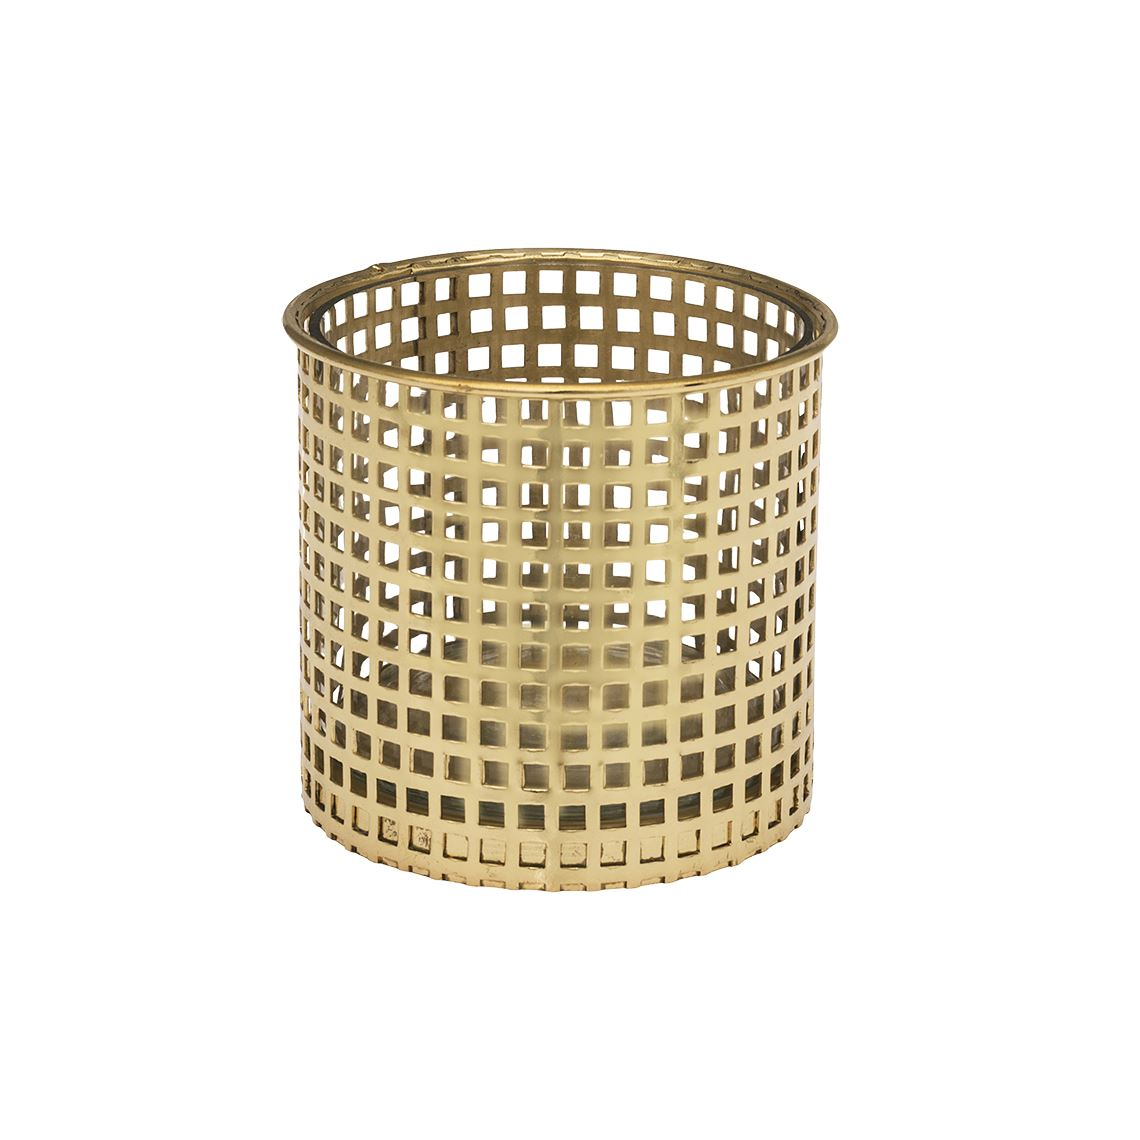 Weston Candle Holder, Colour Size W 11cm x D 11cm x H 10cm in Gold Glass/Steel Freedom by Freedom, a Plants for sale on Style Sourcebook